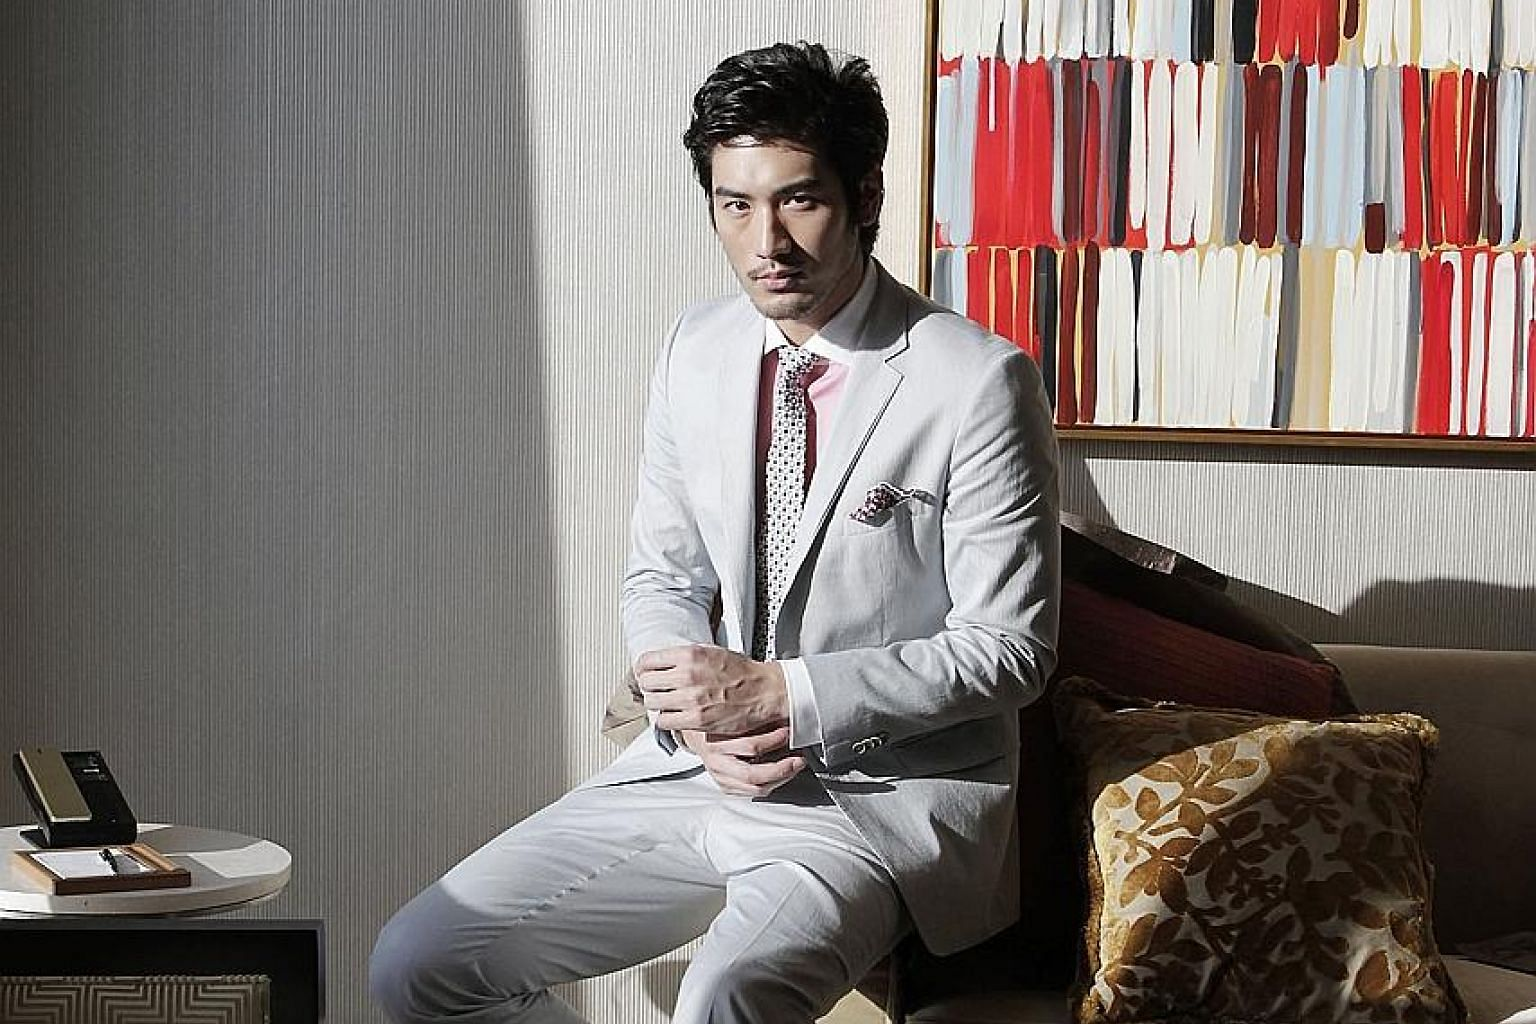 Model-actor Godfrey Gao reportedly worked for 17 hours straight while shooting a Chinese variety series in Zhejiang, China.